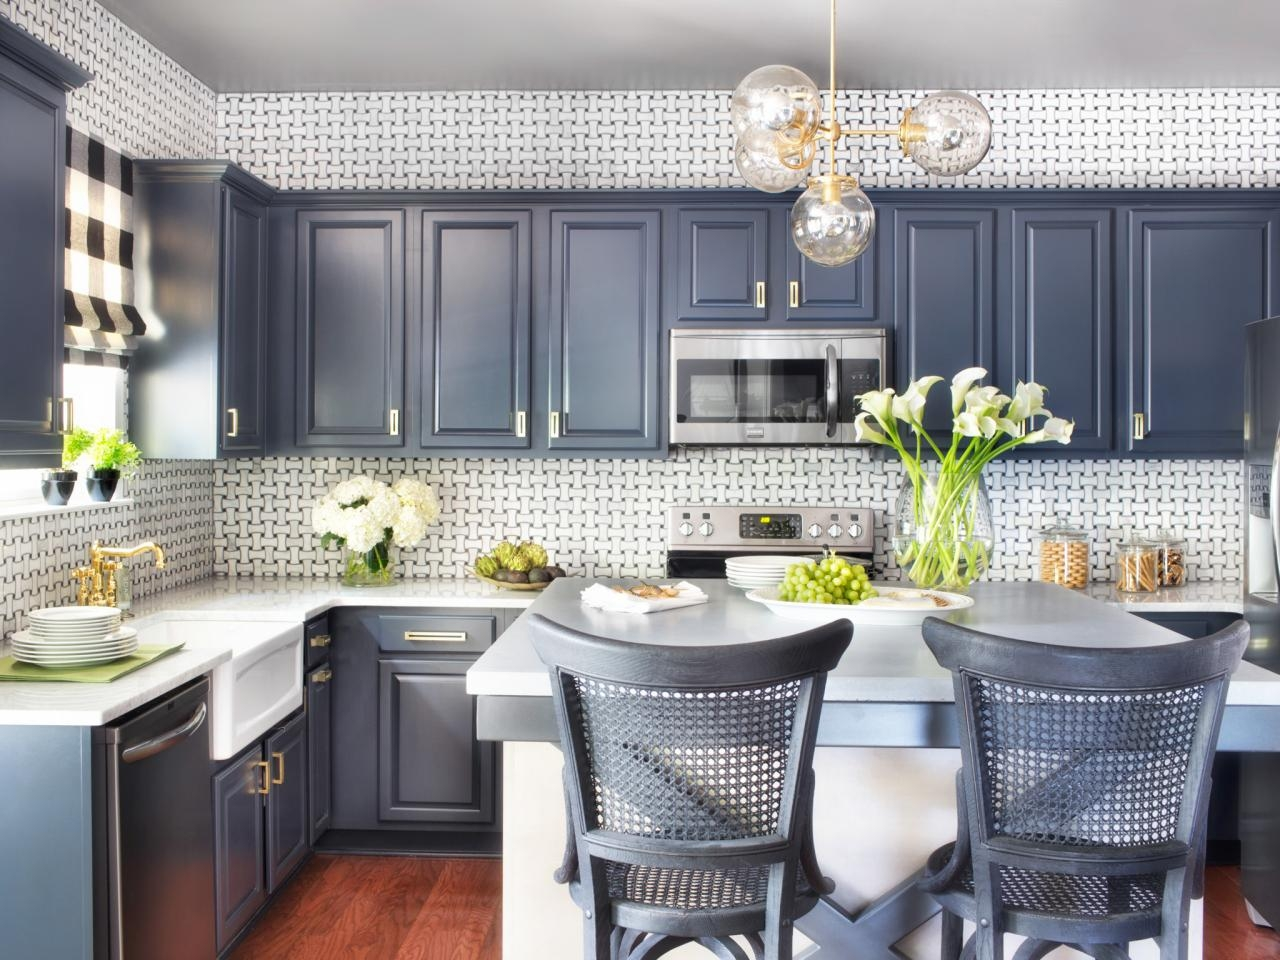 Simple-Tips-for-Buying-Quality-and-Affordable-Appliances-Picture